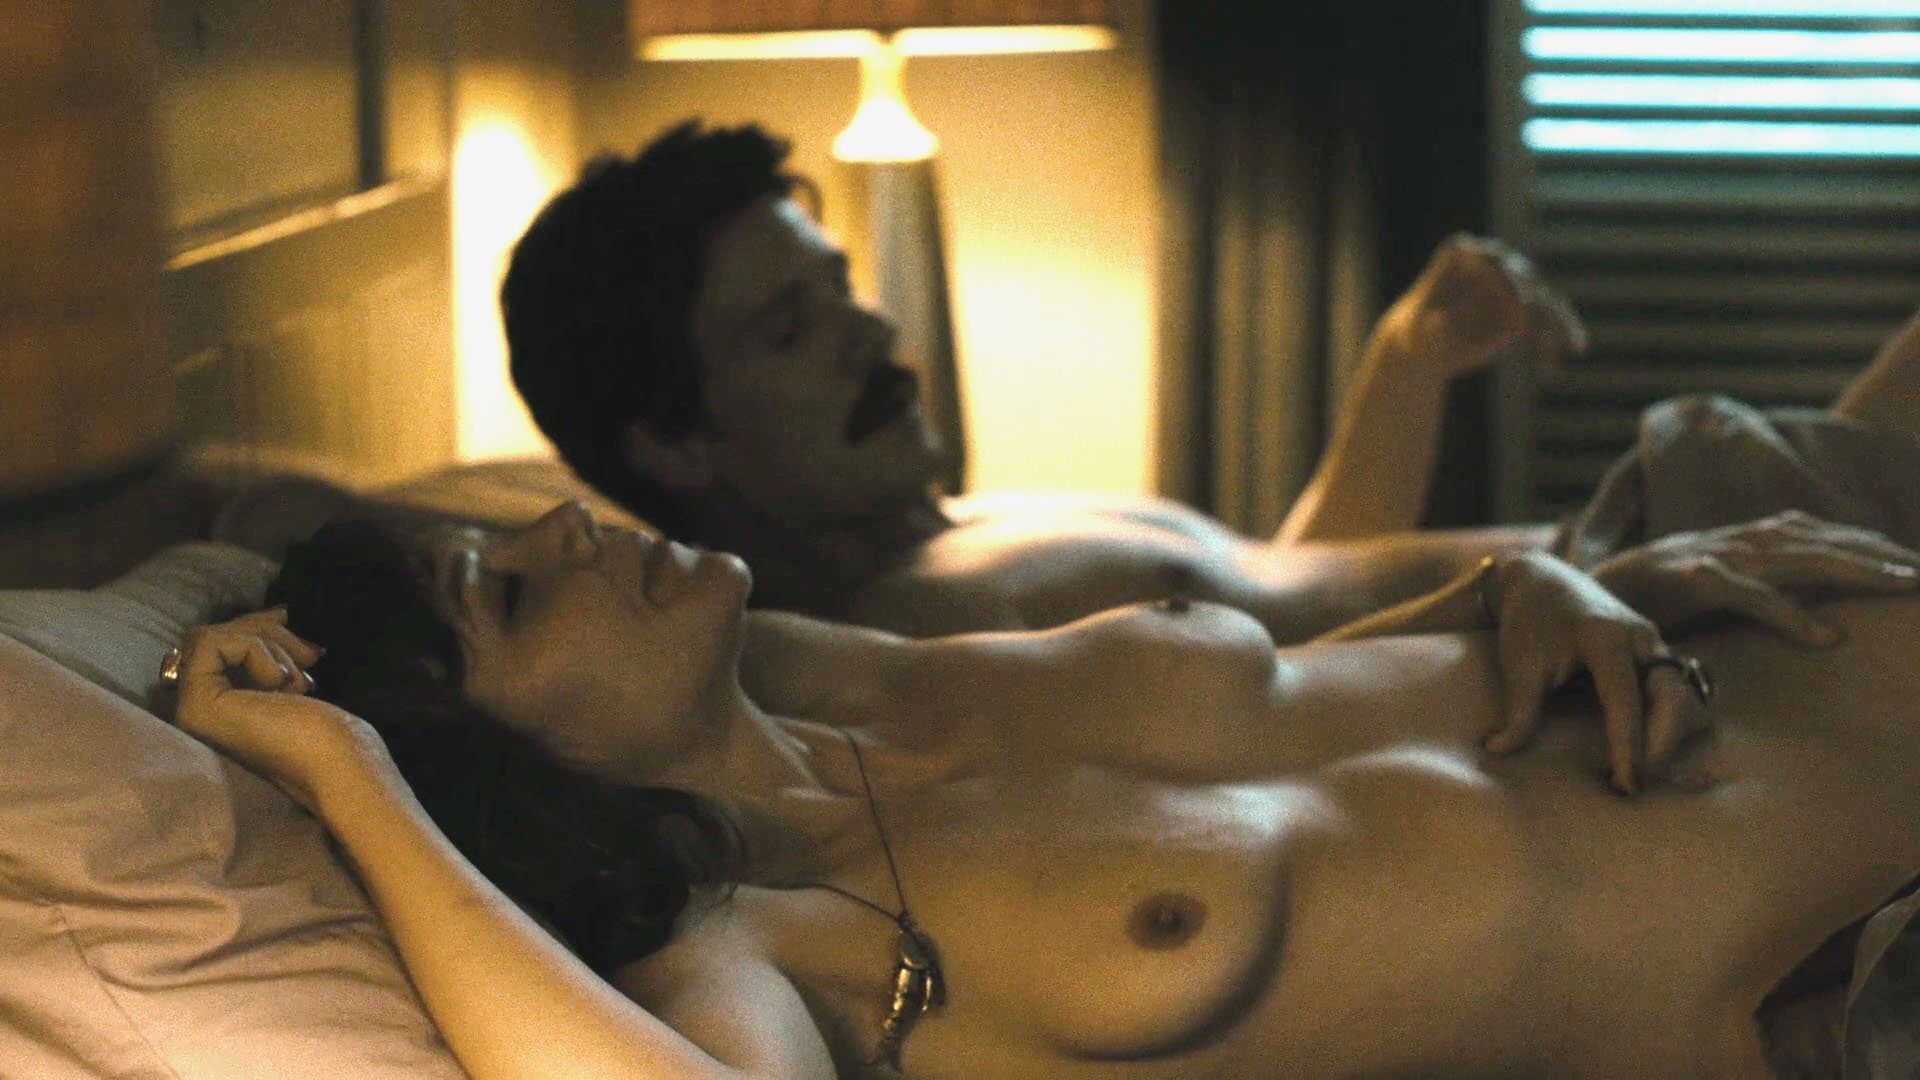 Maggie gyllenhaal nude photo video porn images